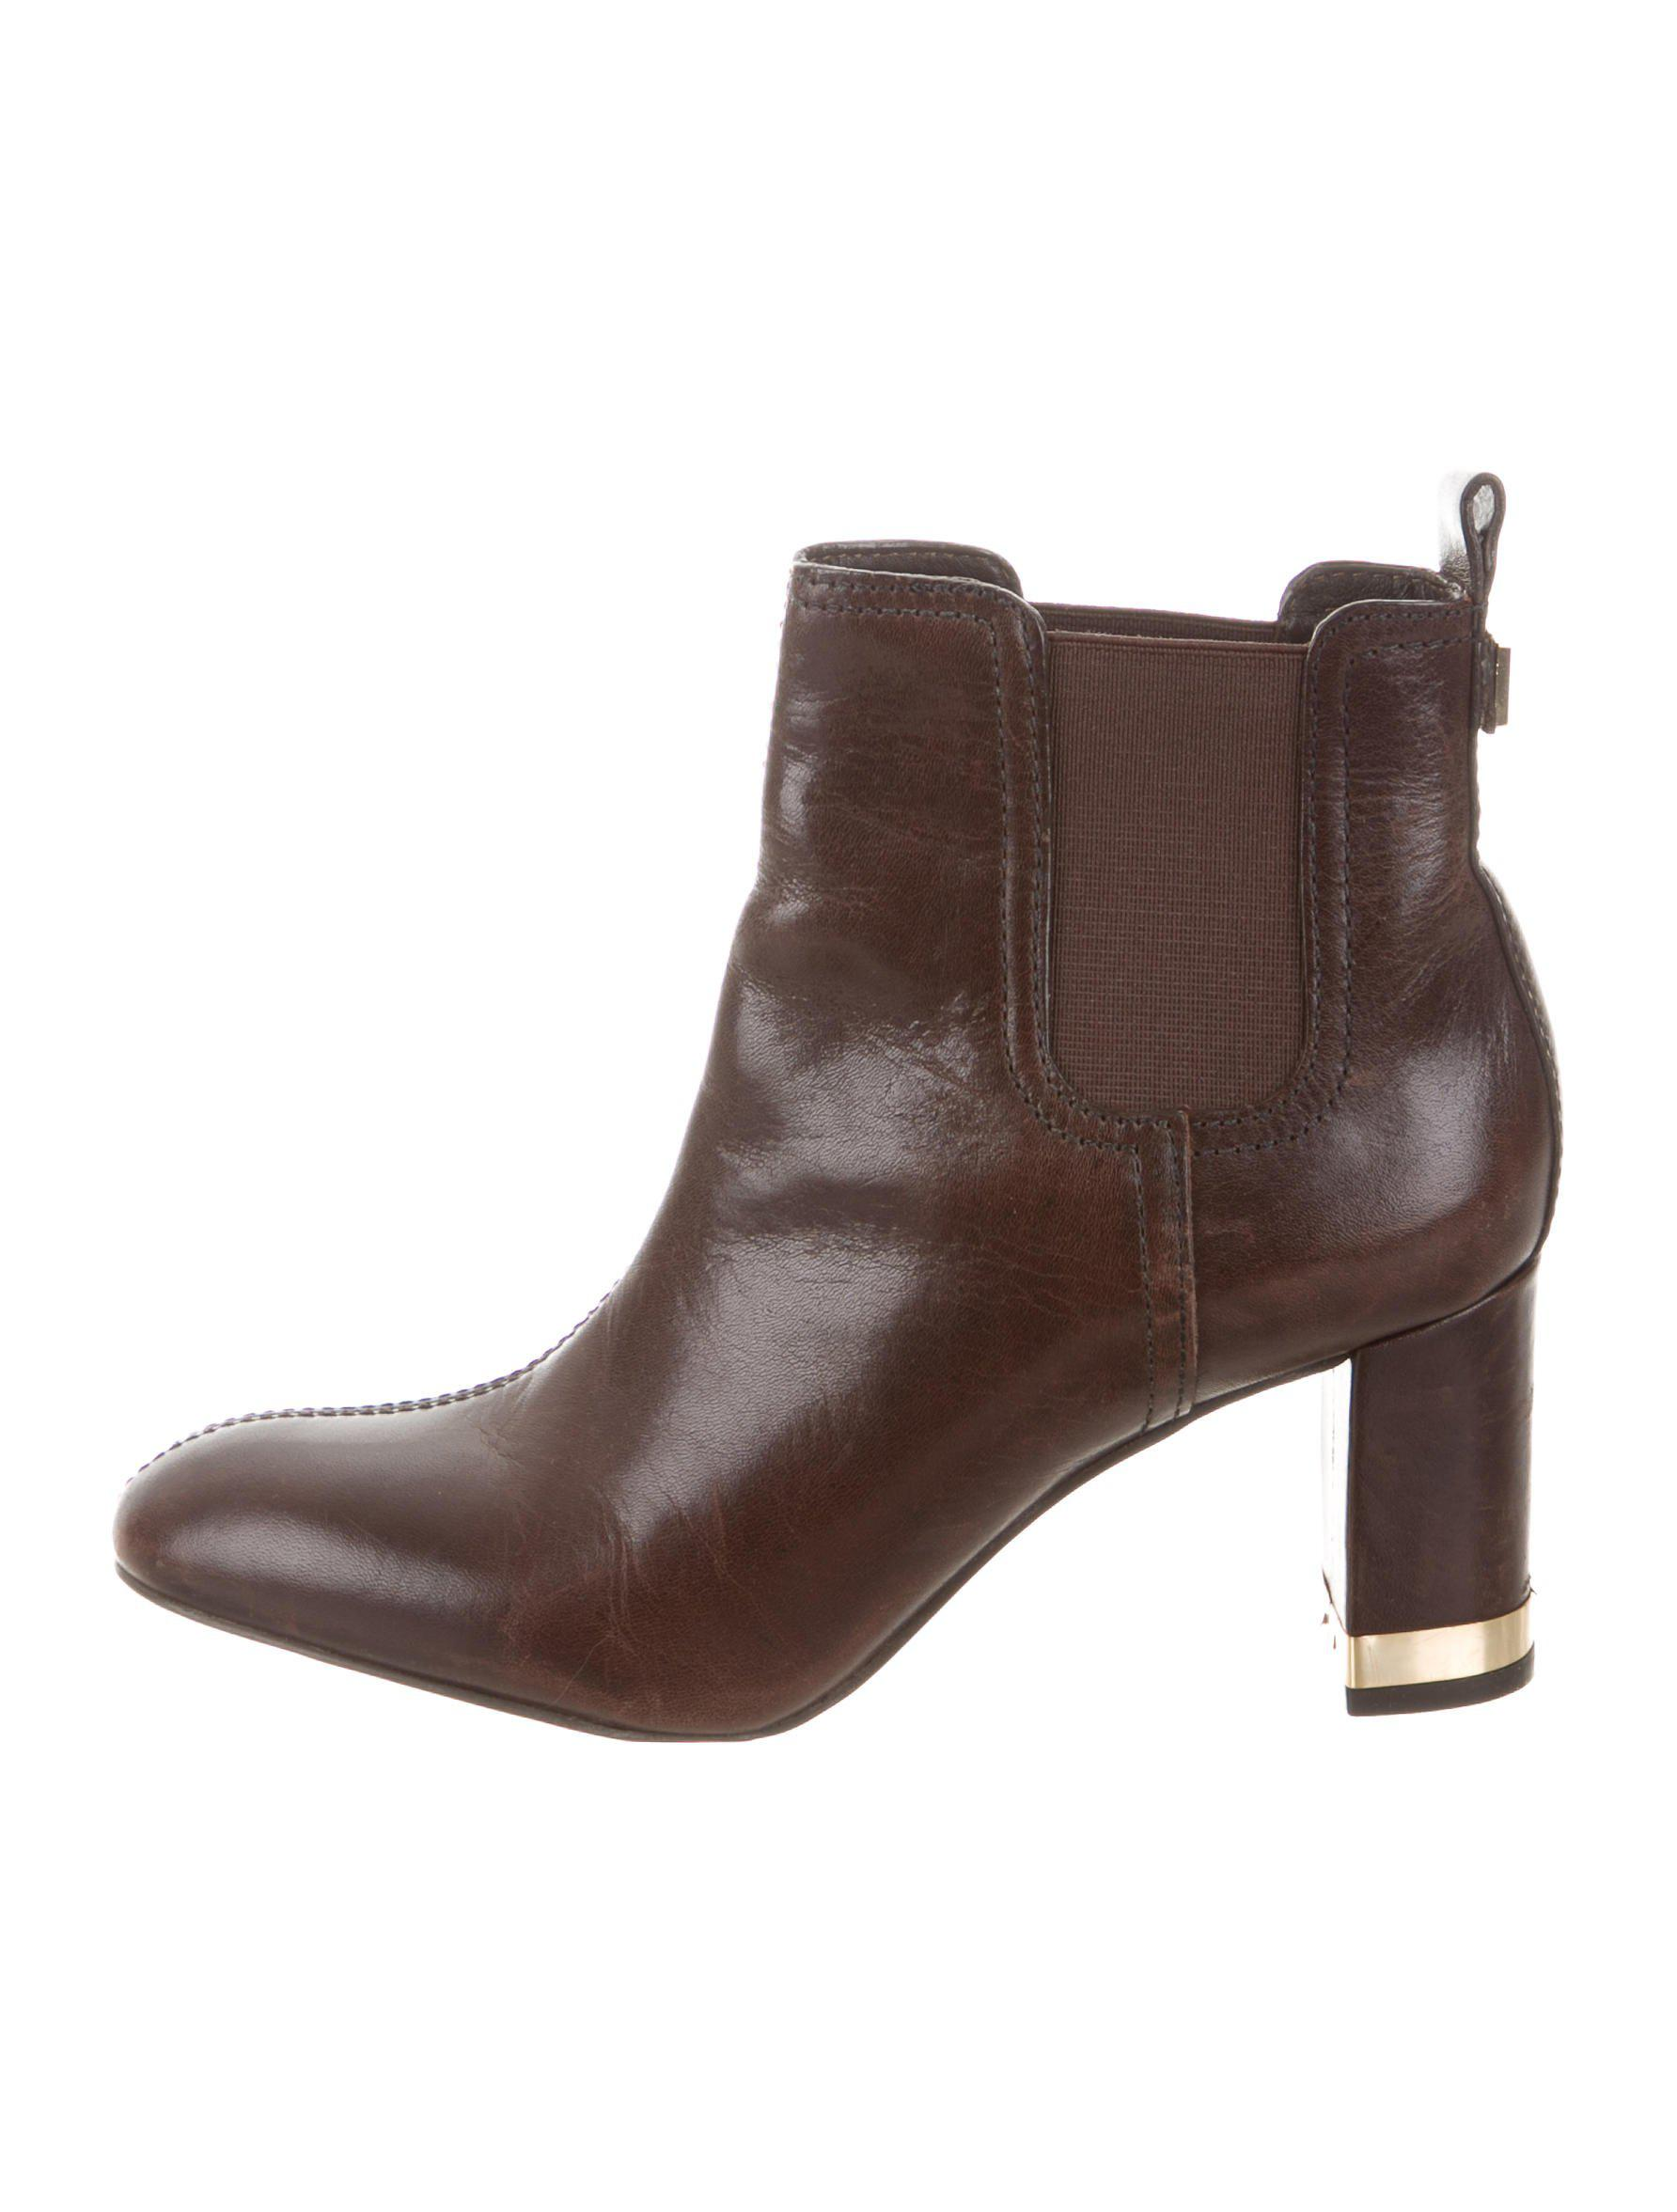 d034c60a4a09f Lyst - Tory Burch Leather Ankle Boots in Black